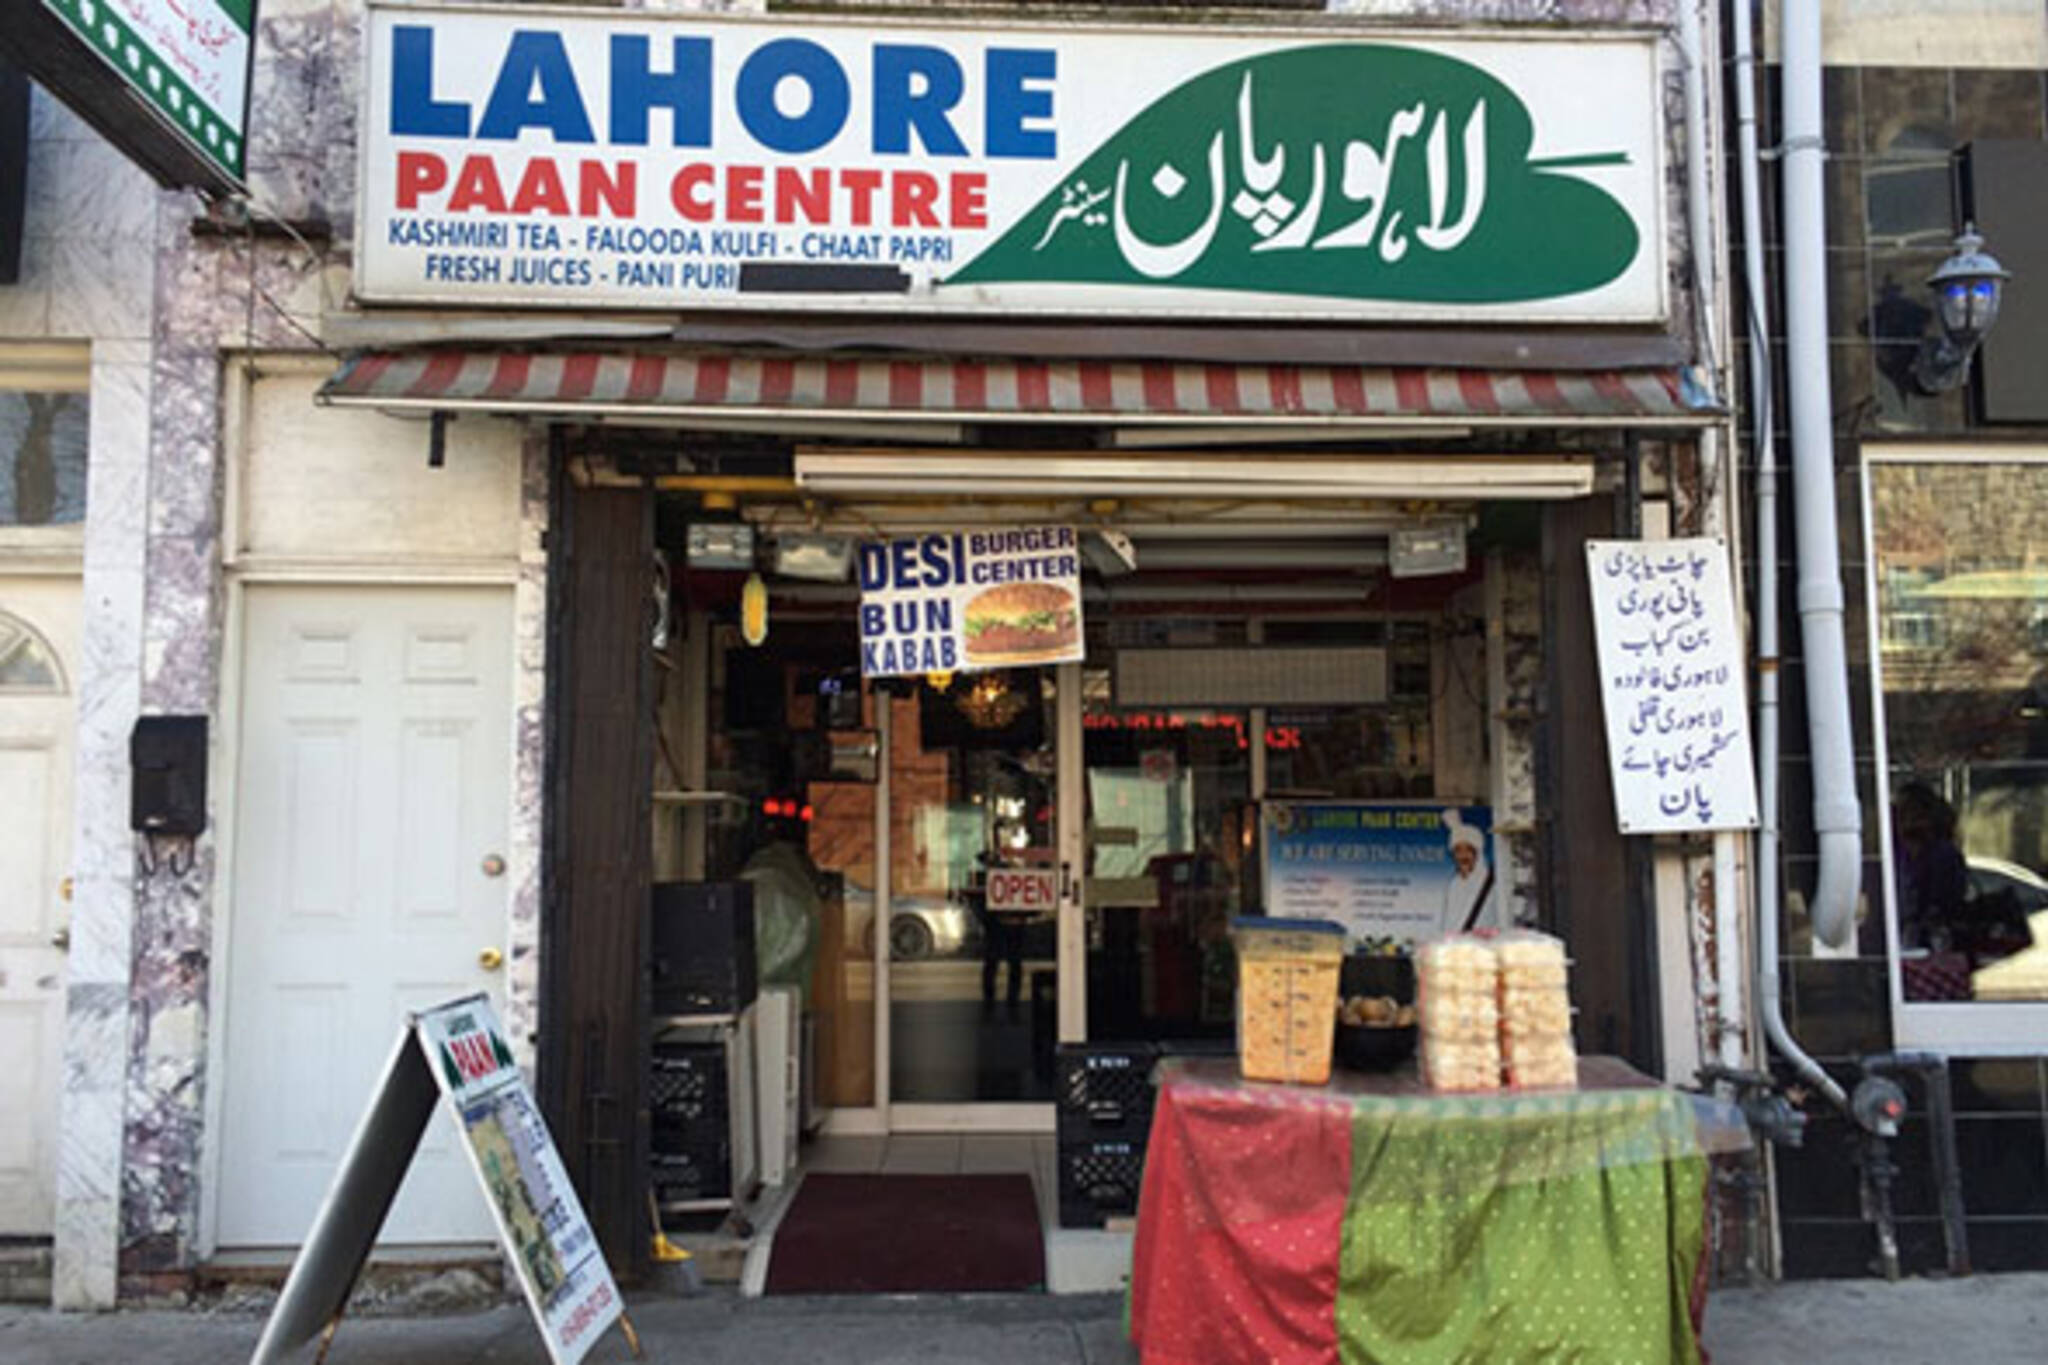 Lahore Paan Centre